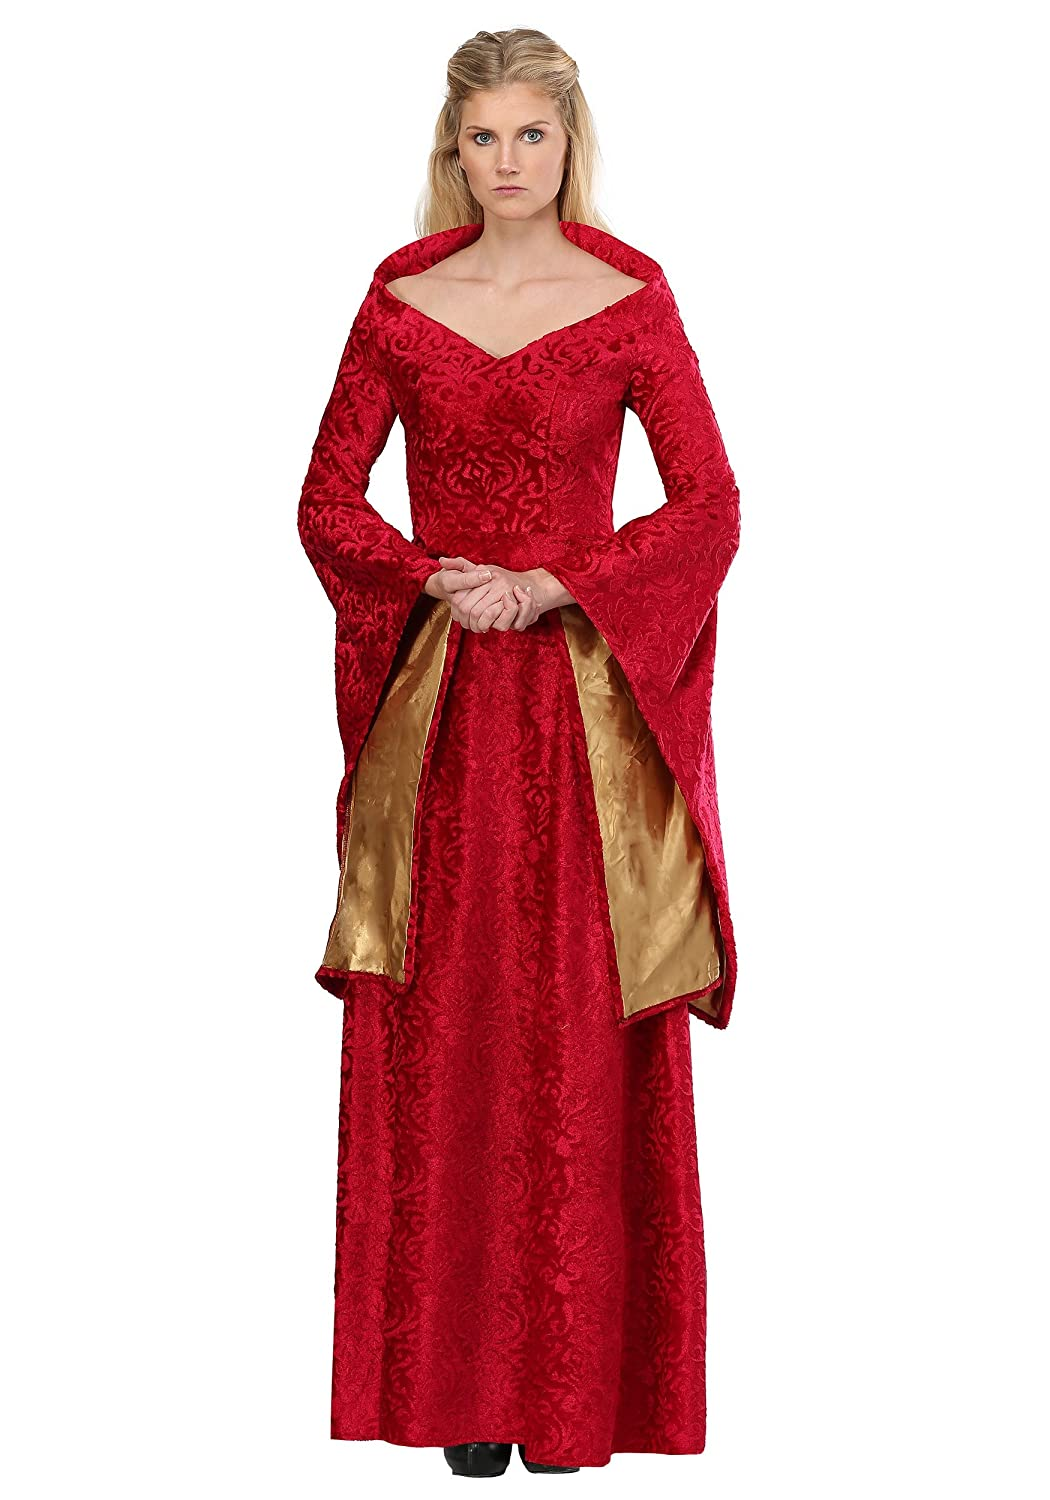 Lion Queen Women's Fancy dress costume X-Large